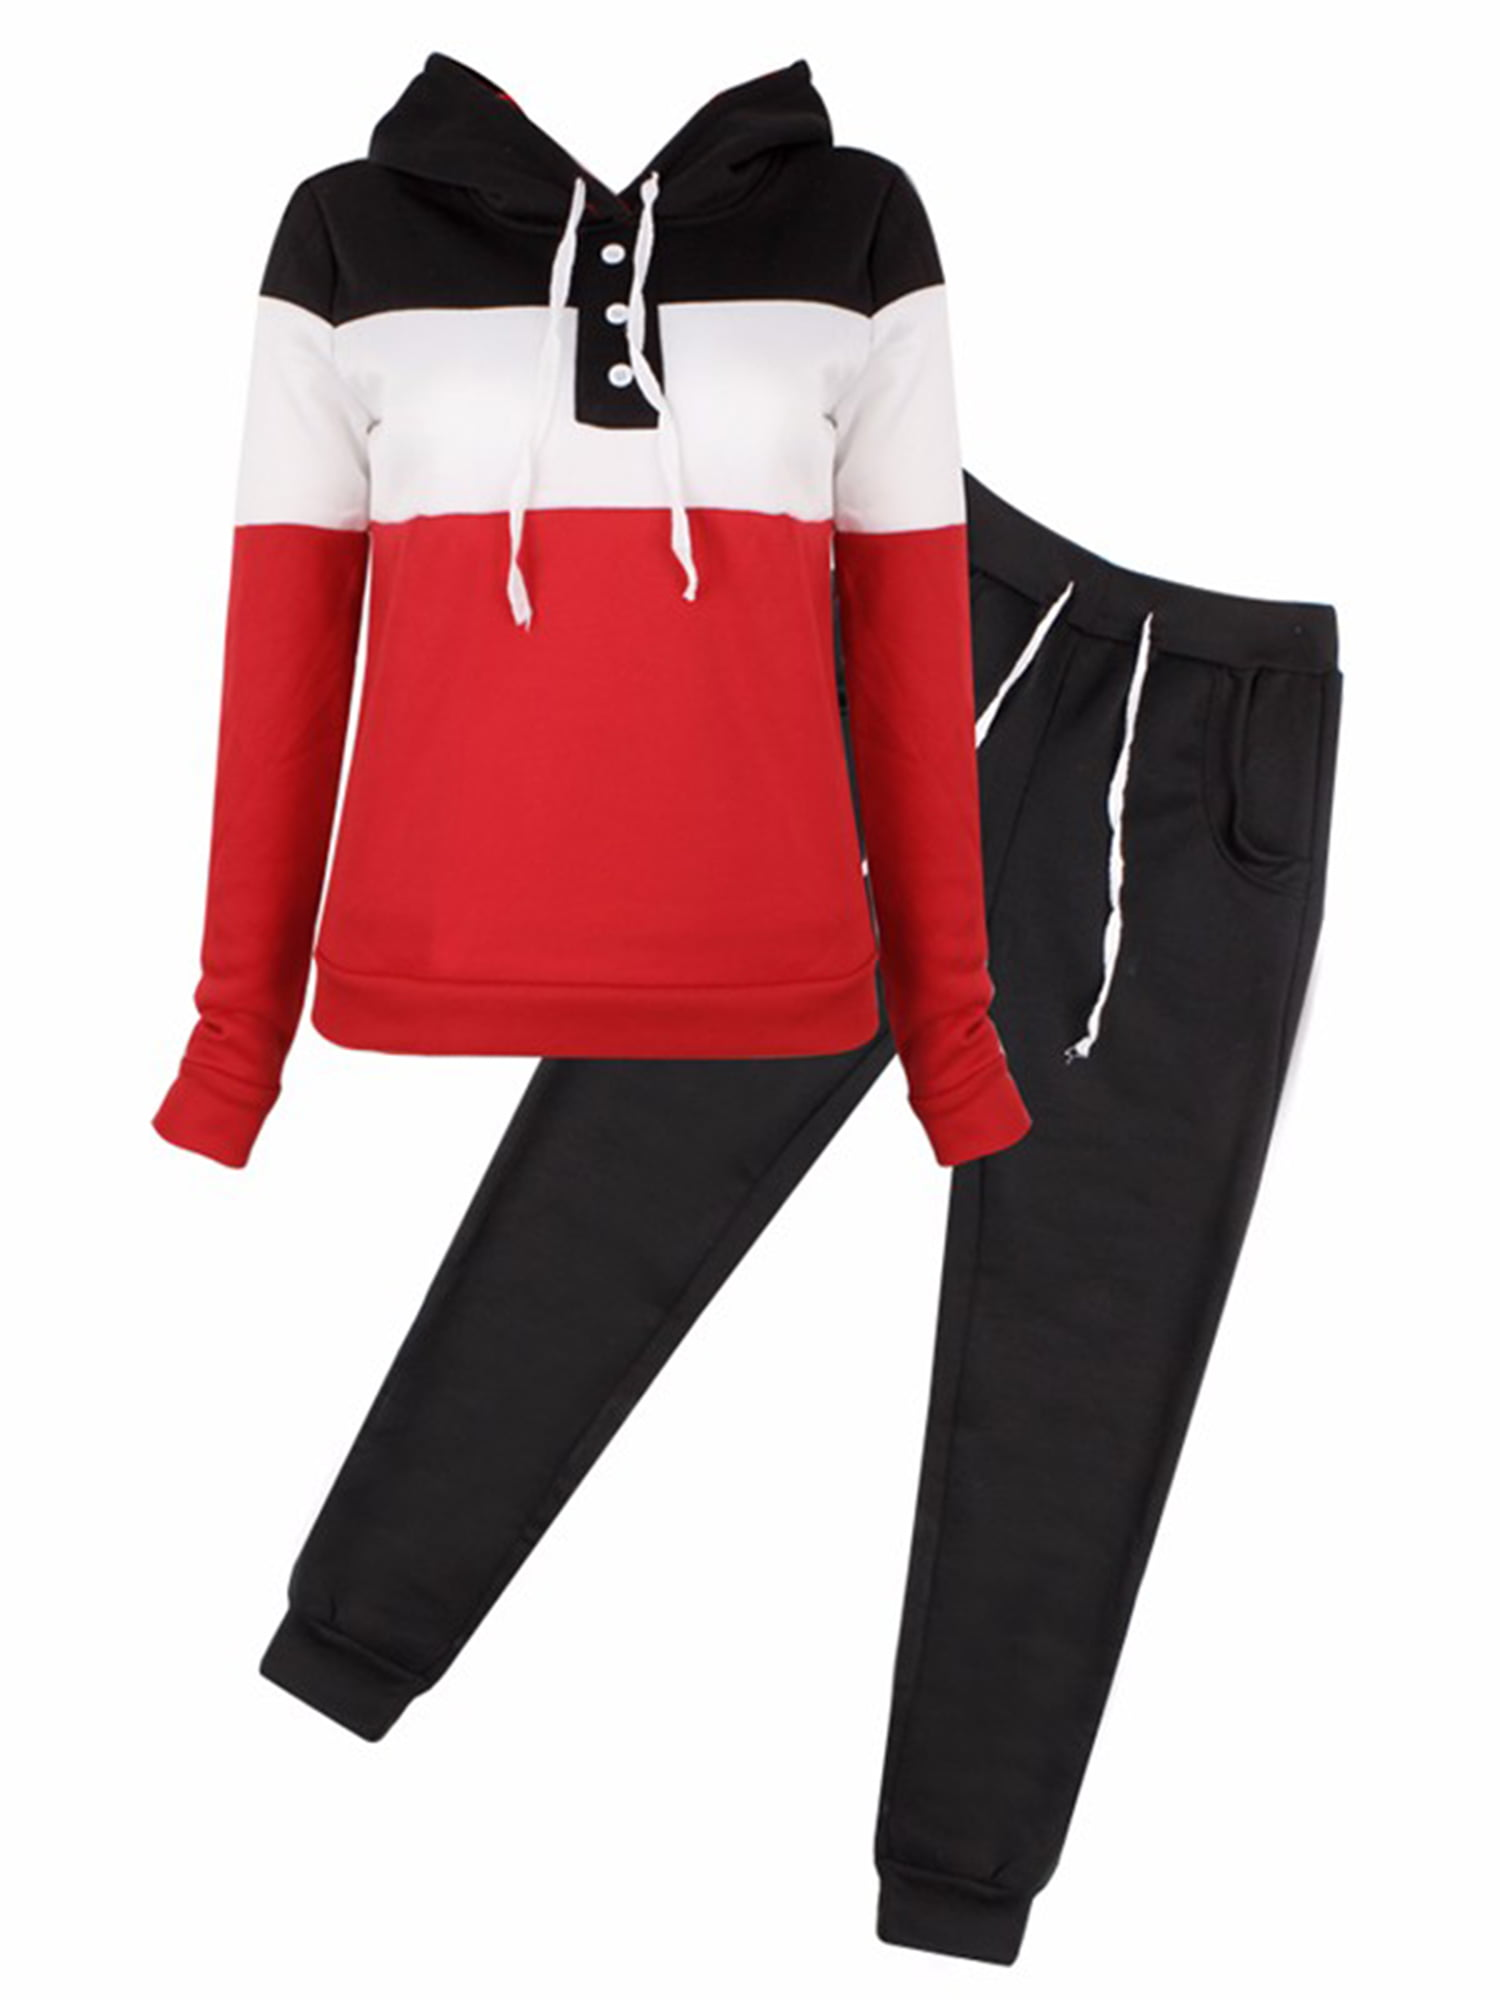 Tracksuit Long Pants Hooded Outfit Set Wan-T Mens Zipper Drawstring 2 Piece Outfits Sweatshirt